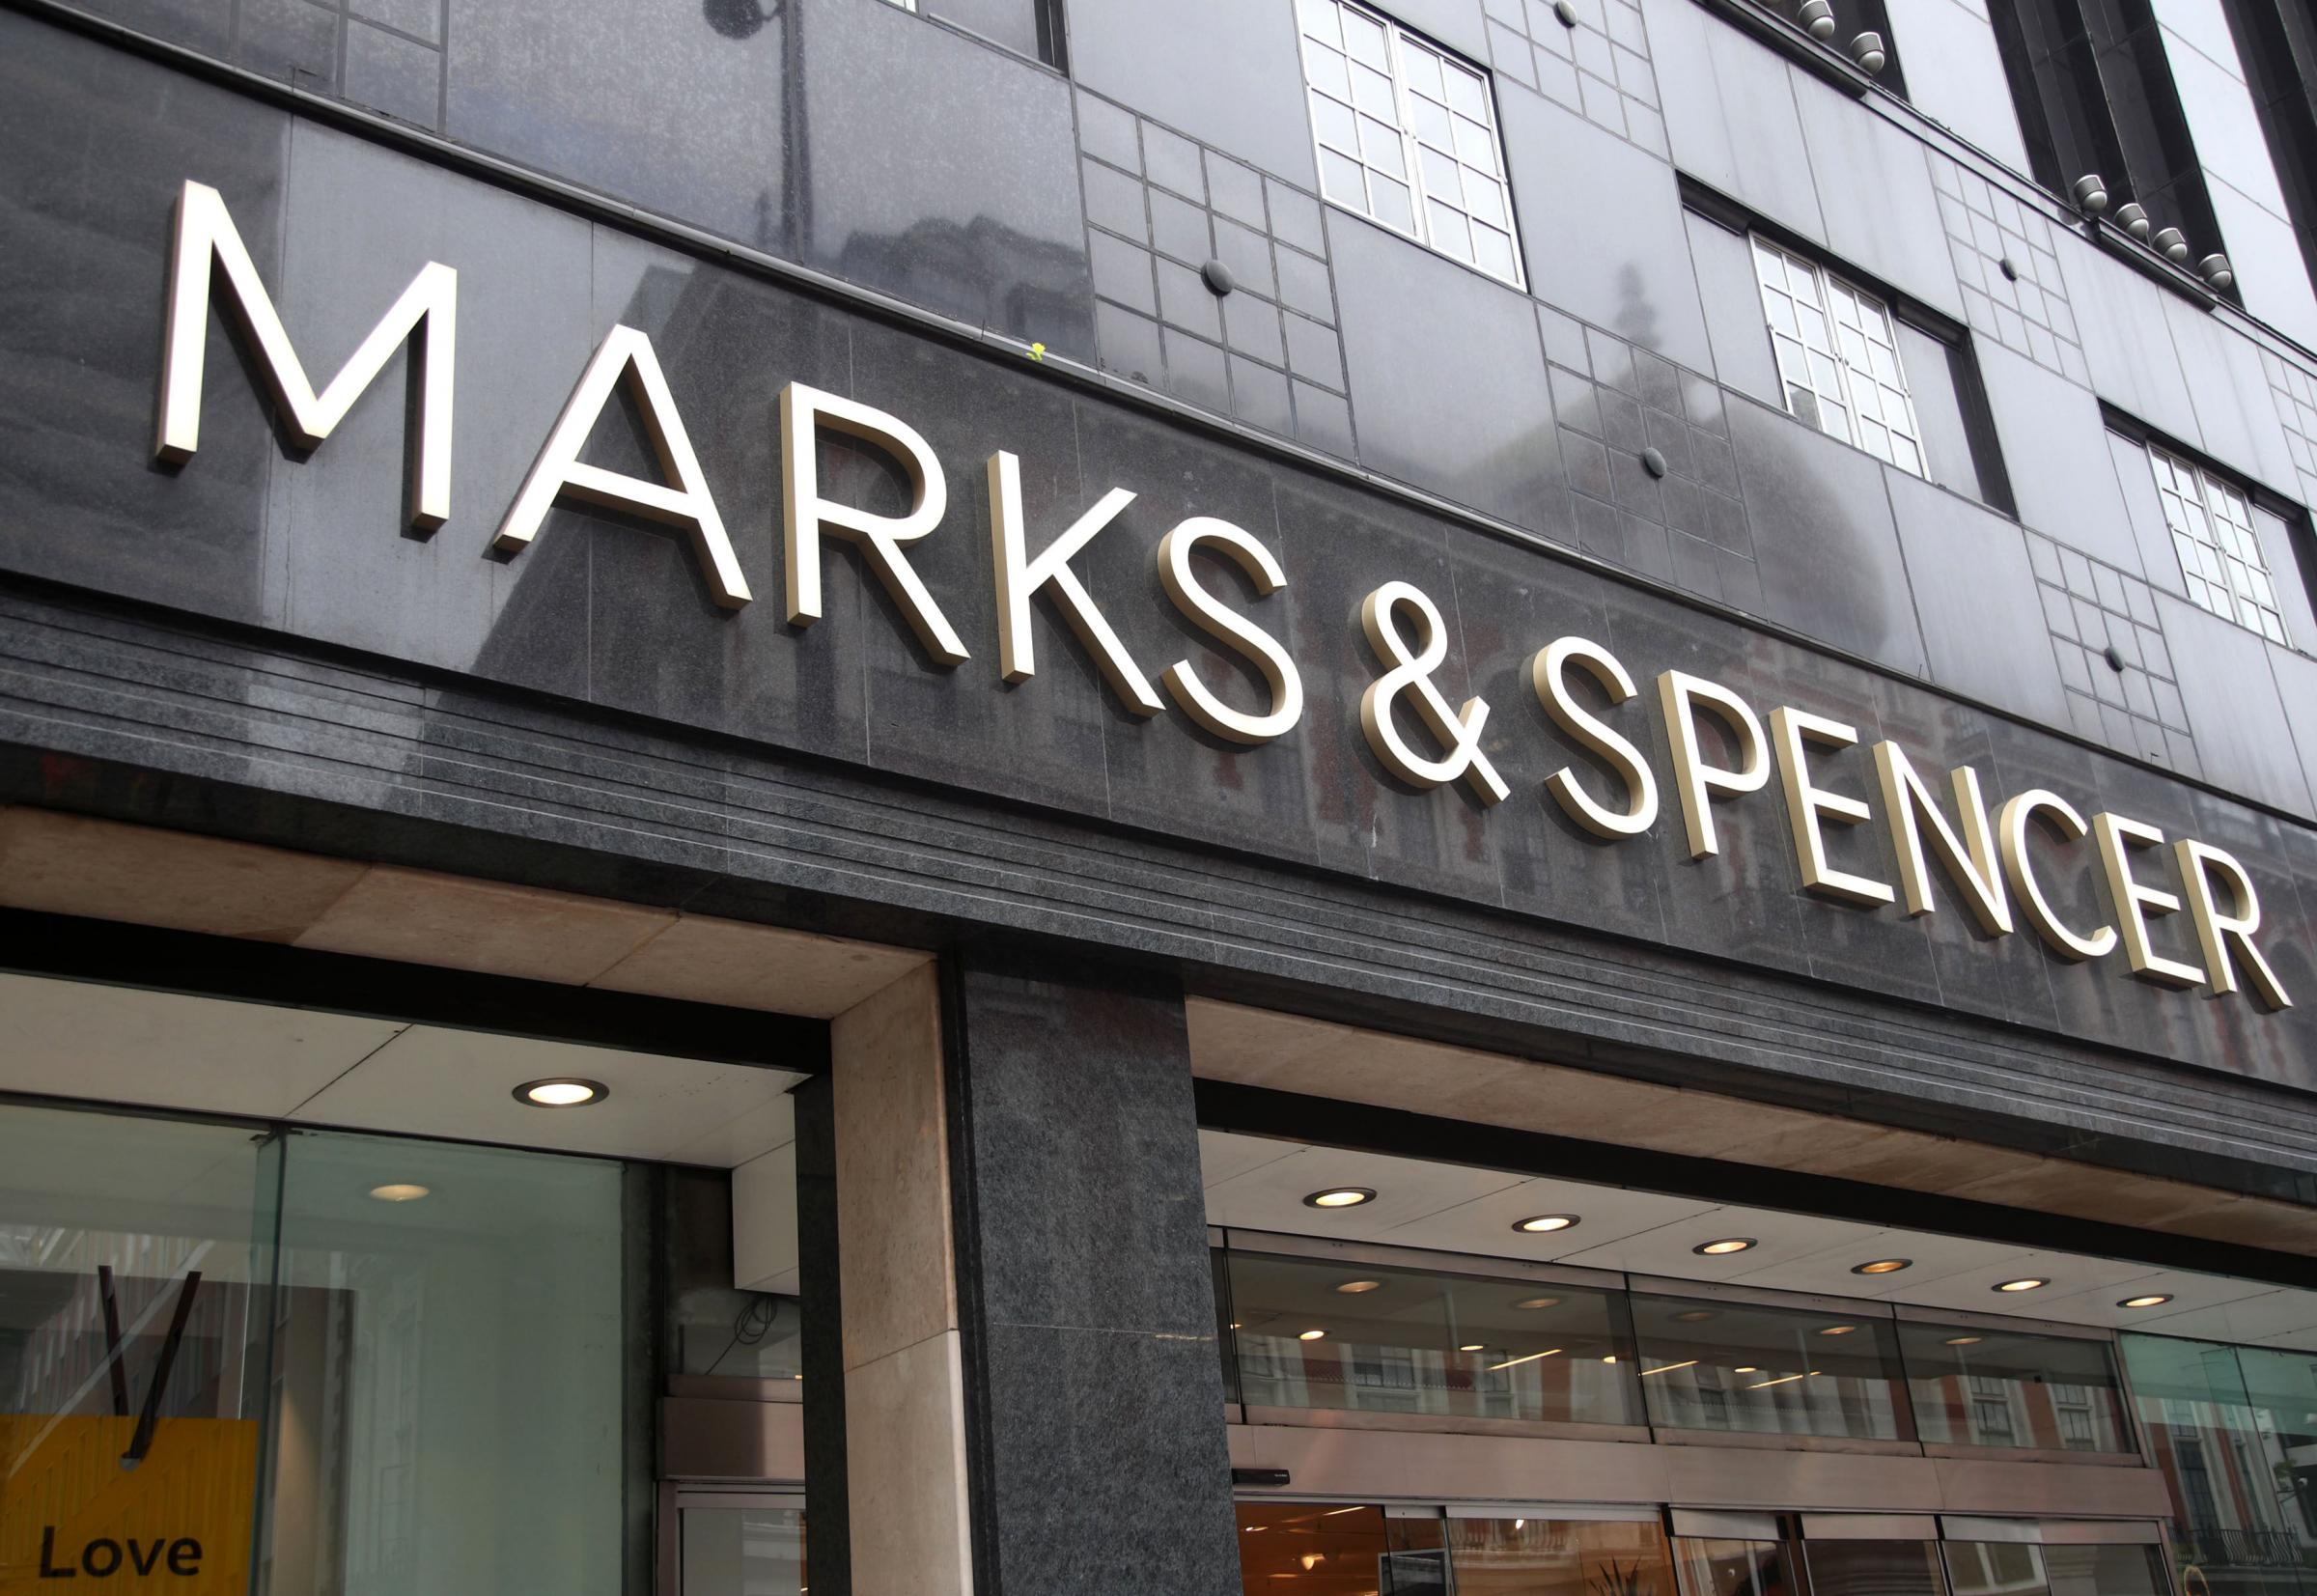 Full list of Marks & Spencer closures announced so far